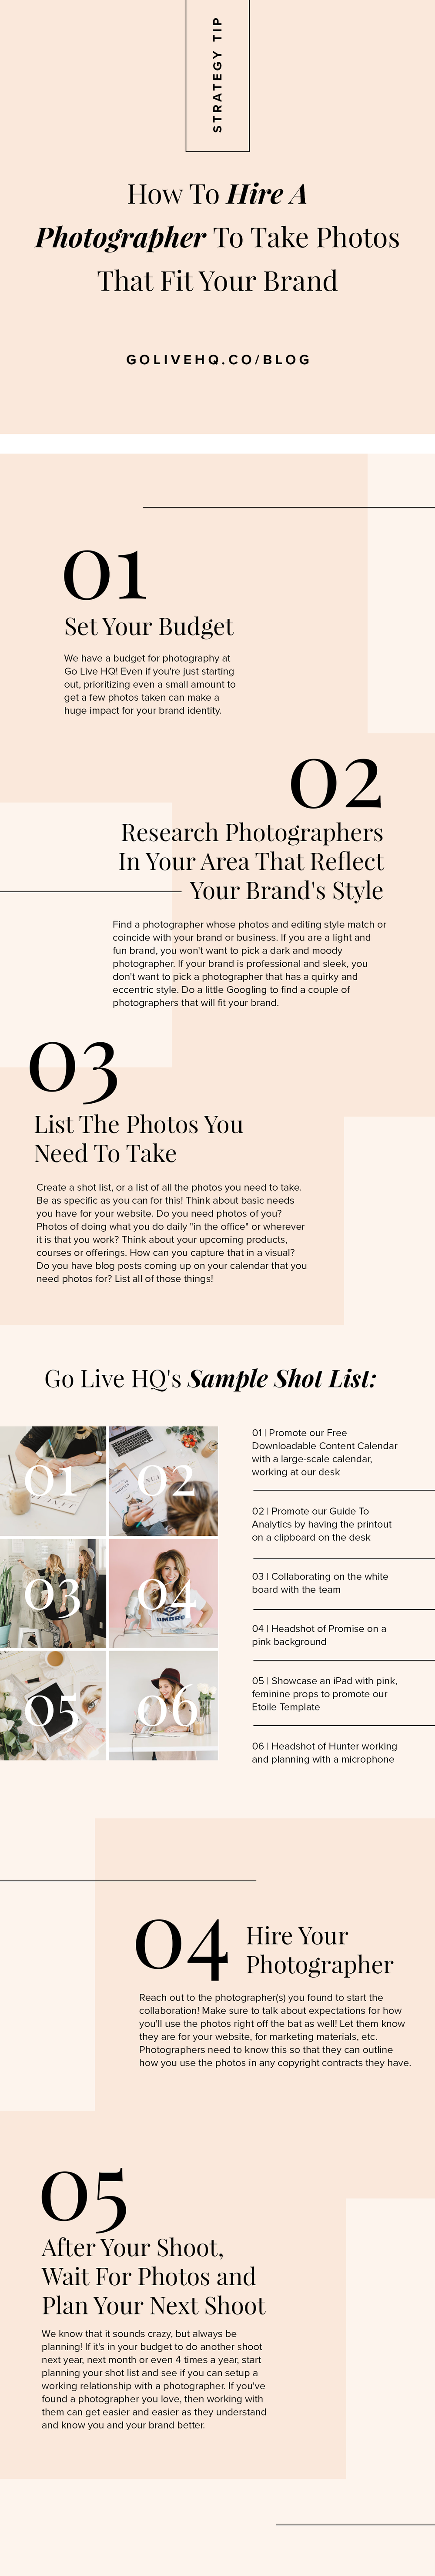 How To Hire A Photographer To Take Photos That Fit Your Brand | Go Live HQ